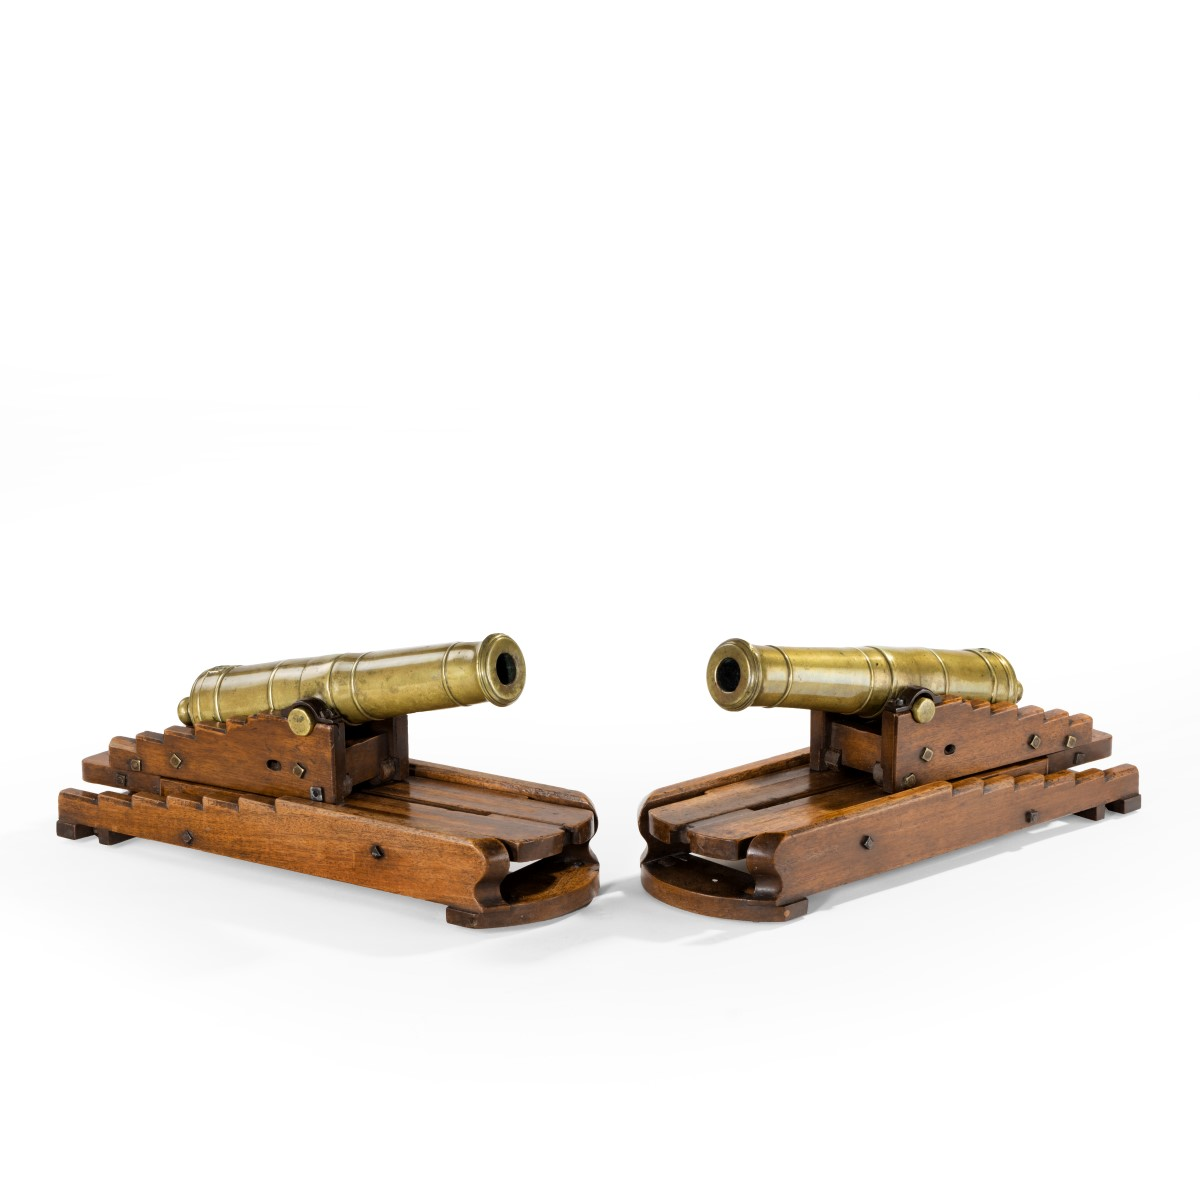 pair of brass 19th century models of ship's 32-pounder cannon